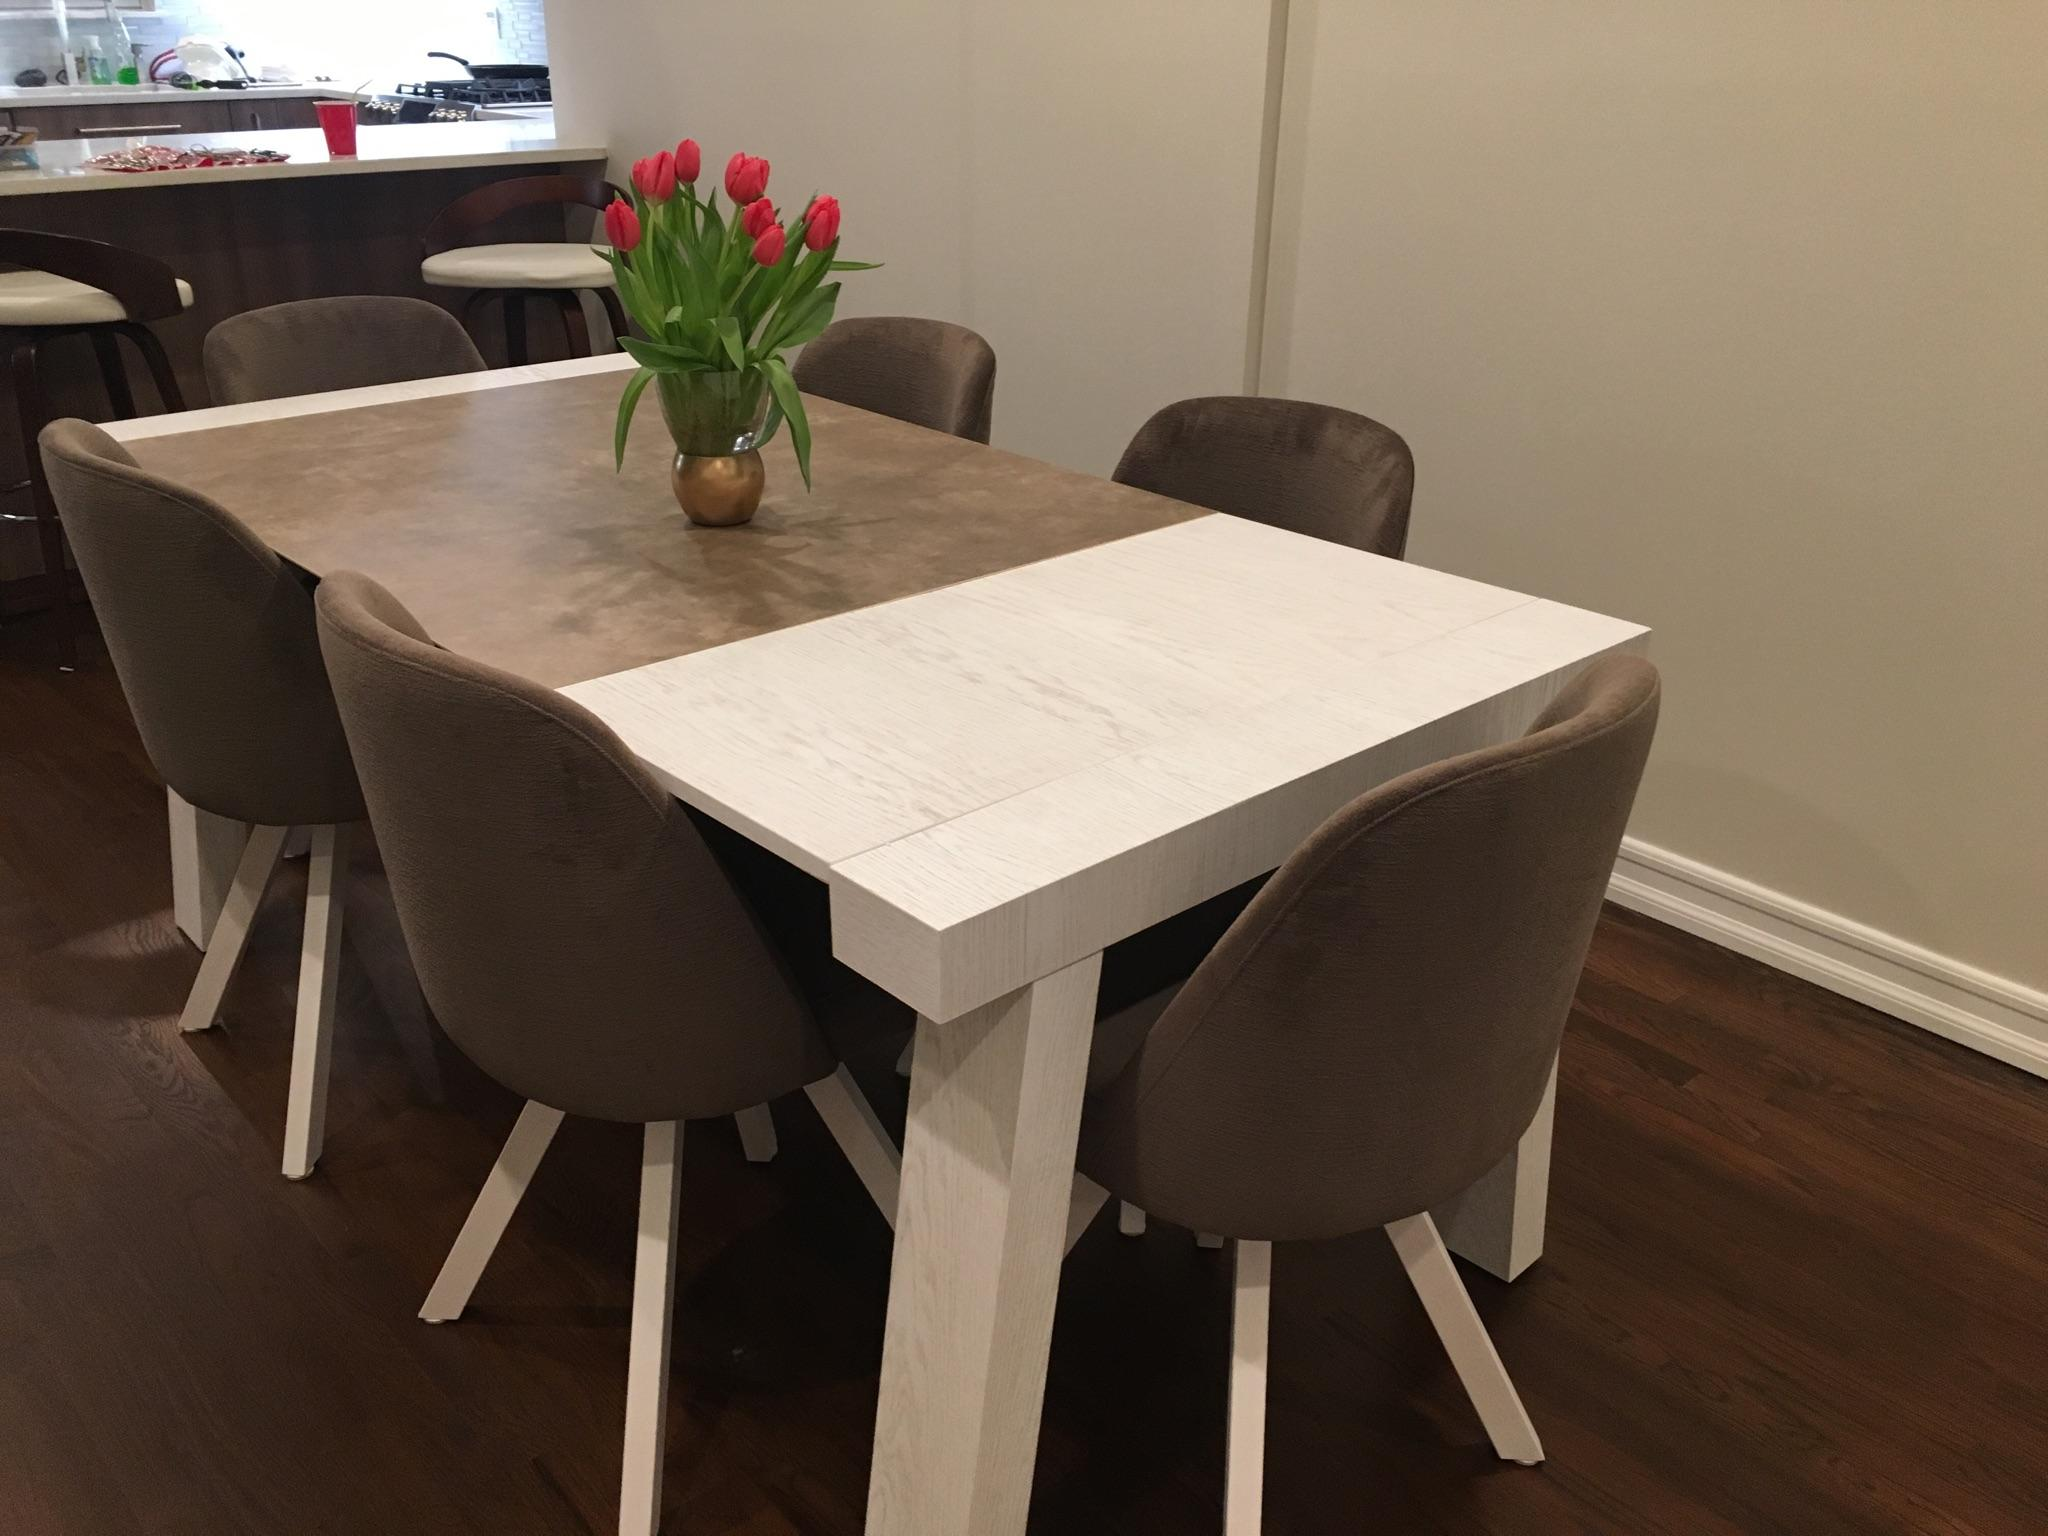 Reyna dining room with albi chairs modern formal dining for Modern formal dining set